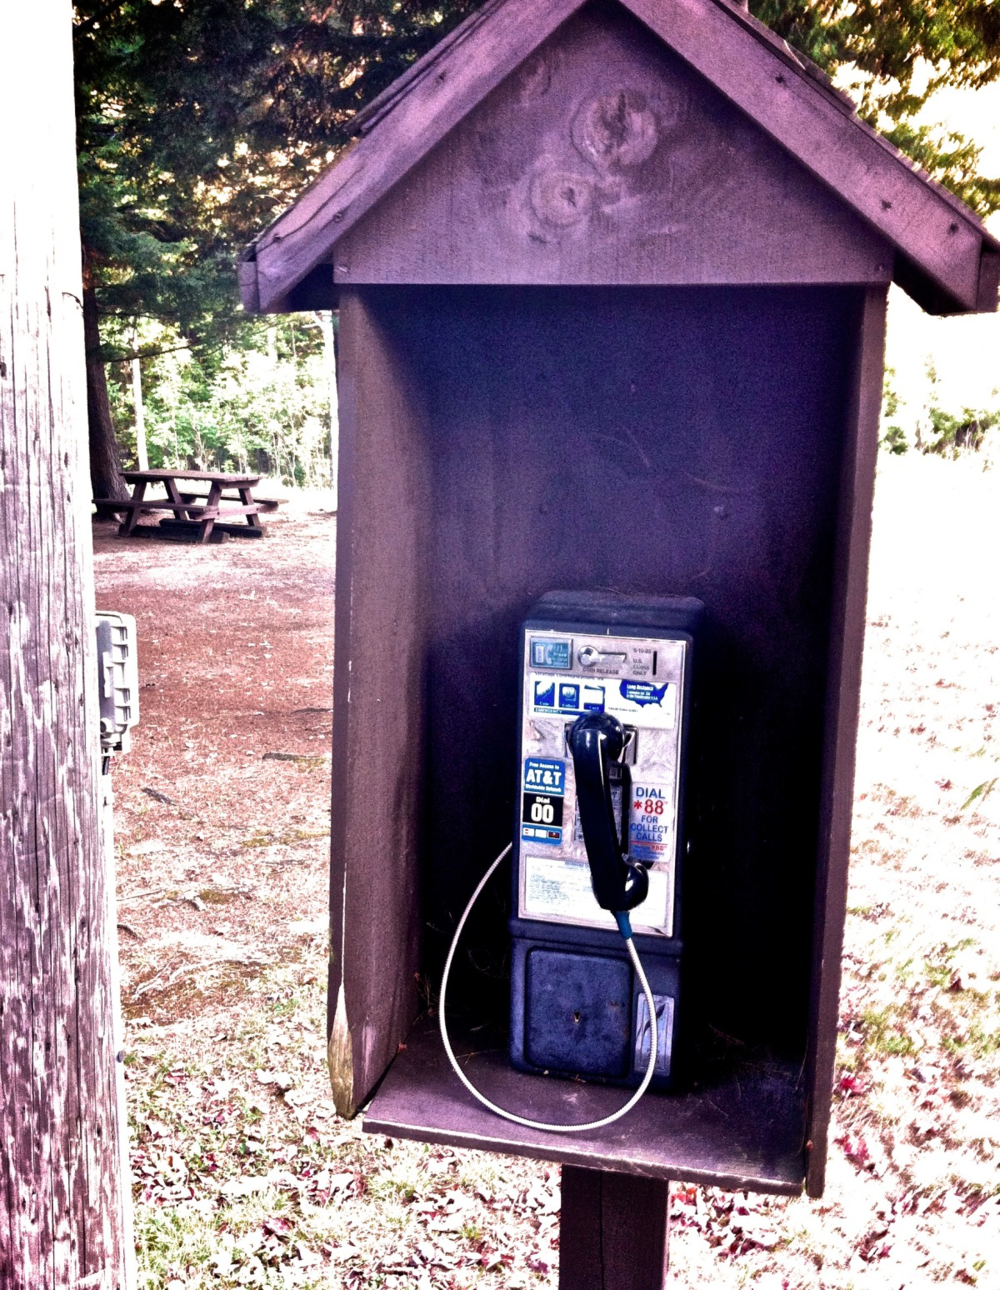 payphone 9.17 upload 2.jpg